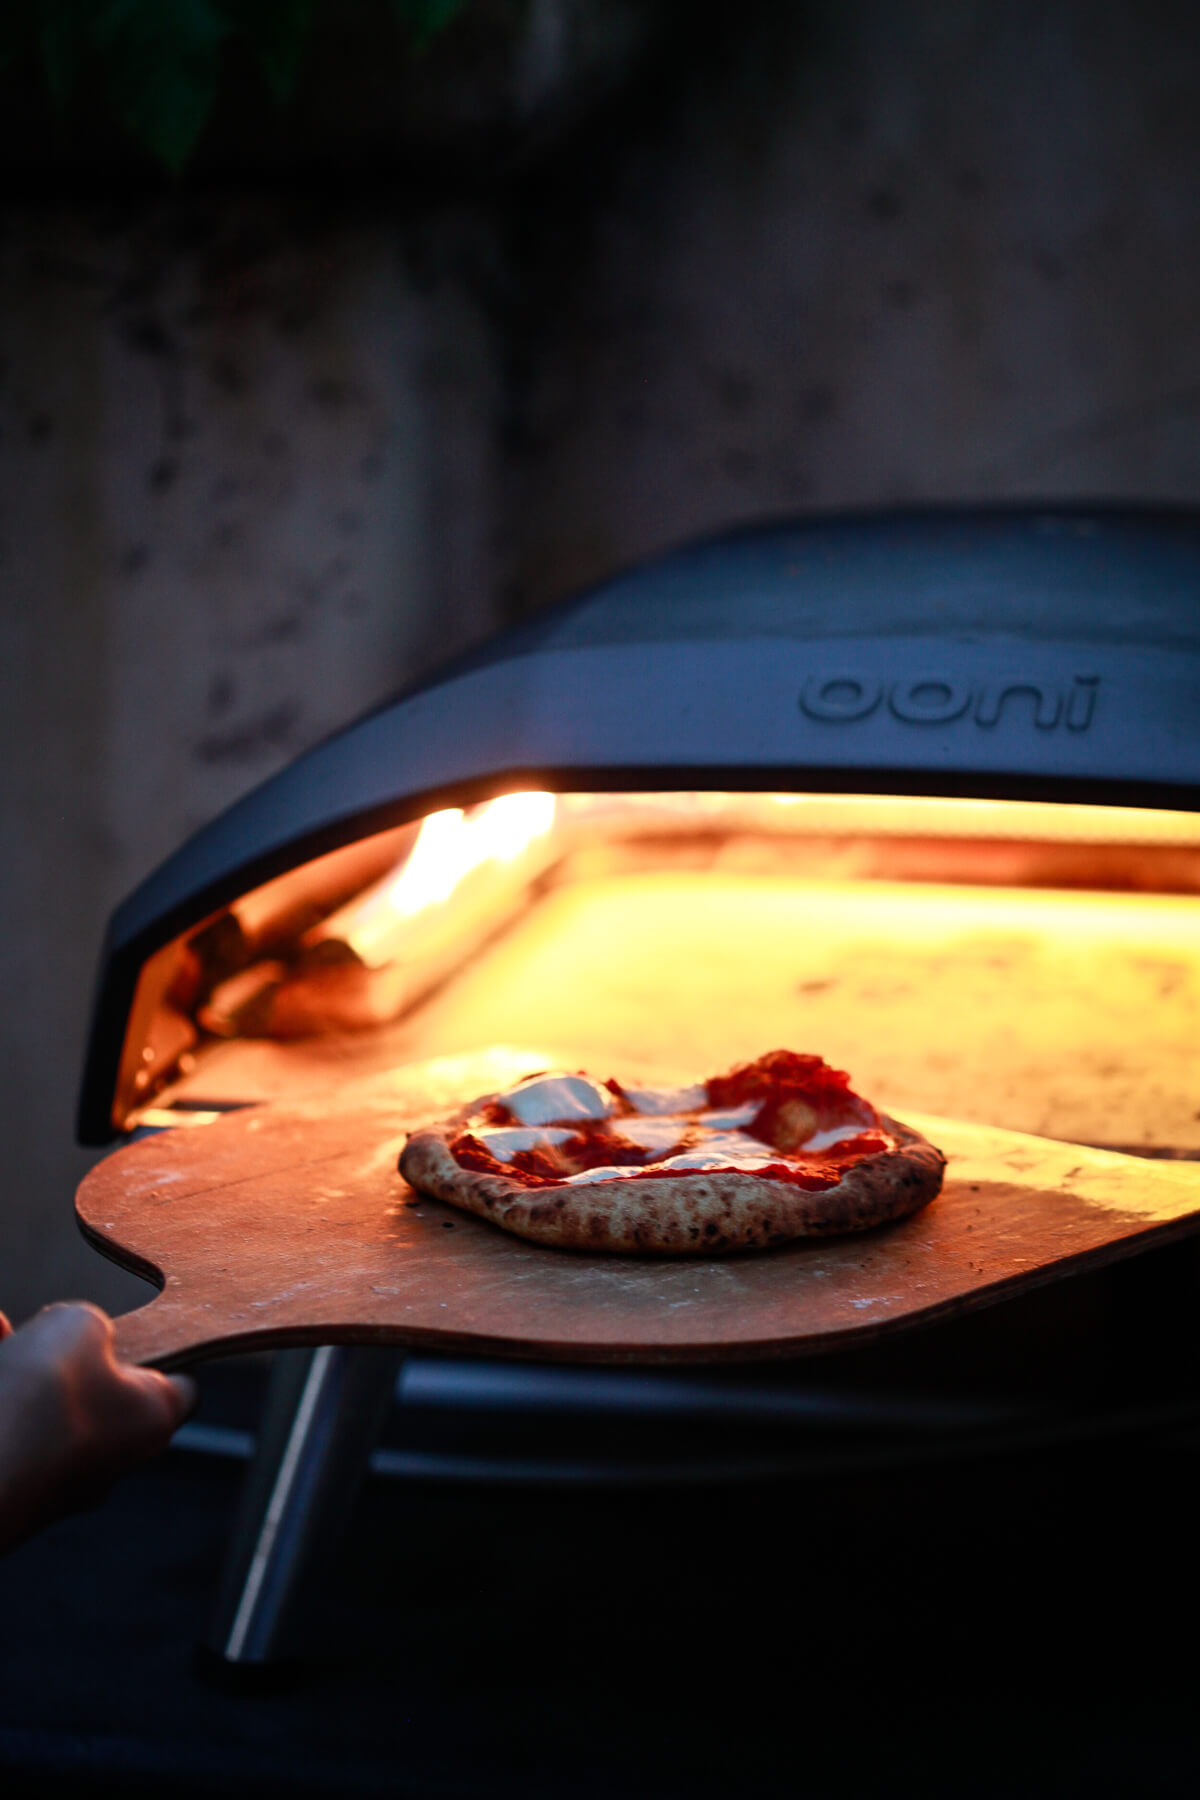 A perfectly cooked margherita pizza comes out of an Ooni Koda 16 pizza oven on a wooden pizza peel.